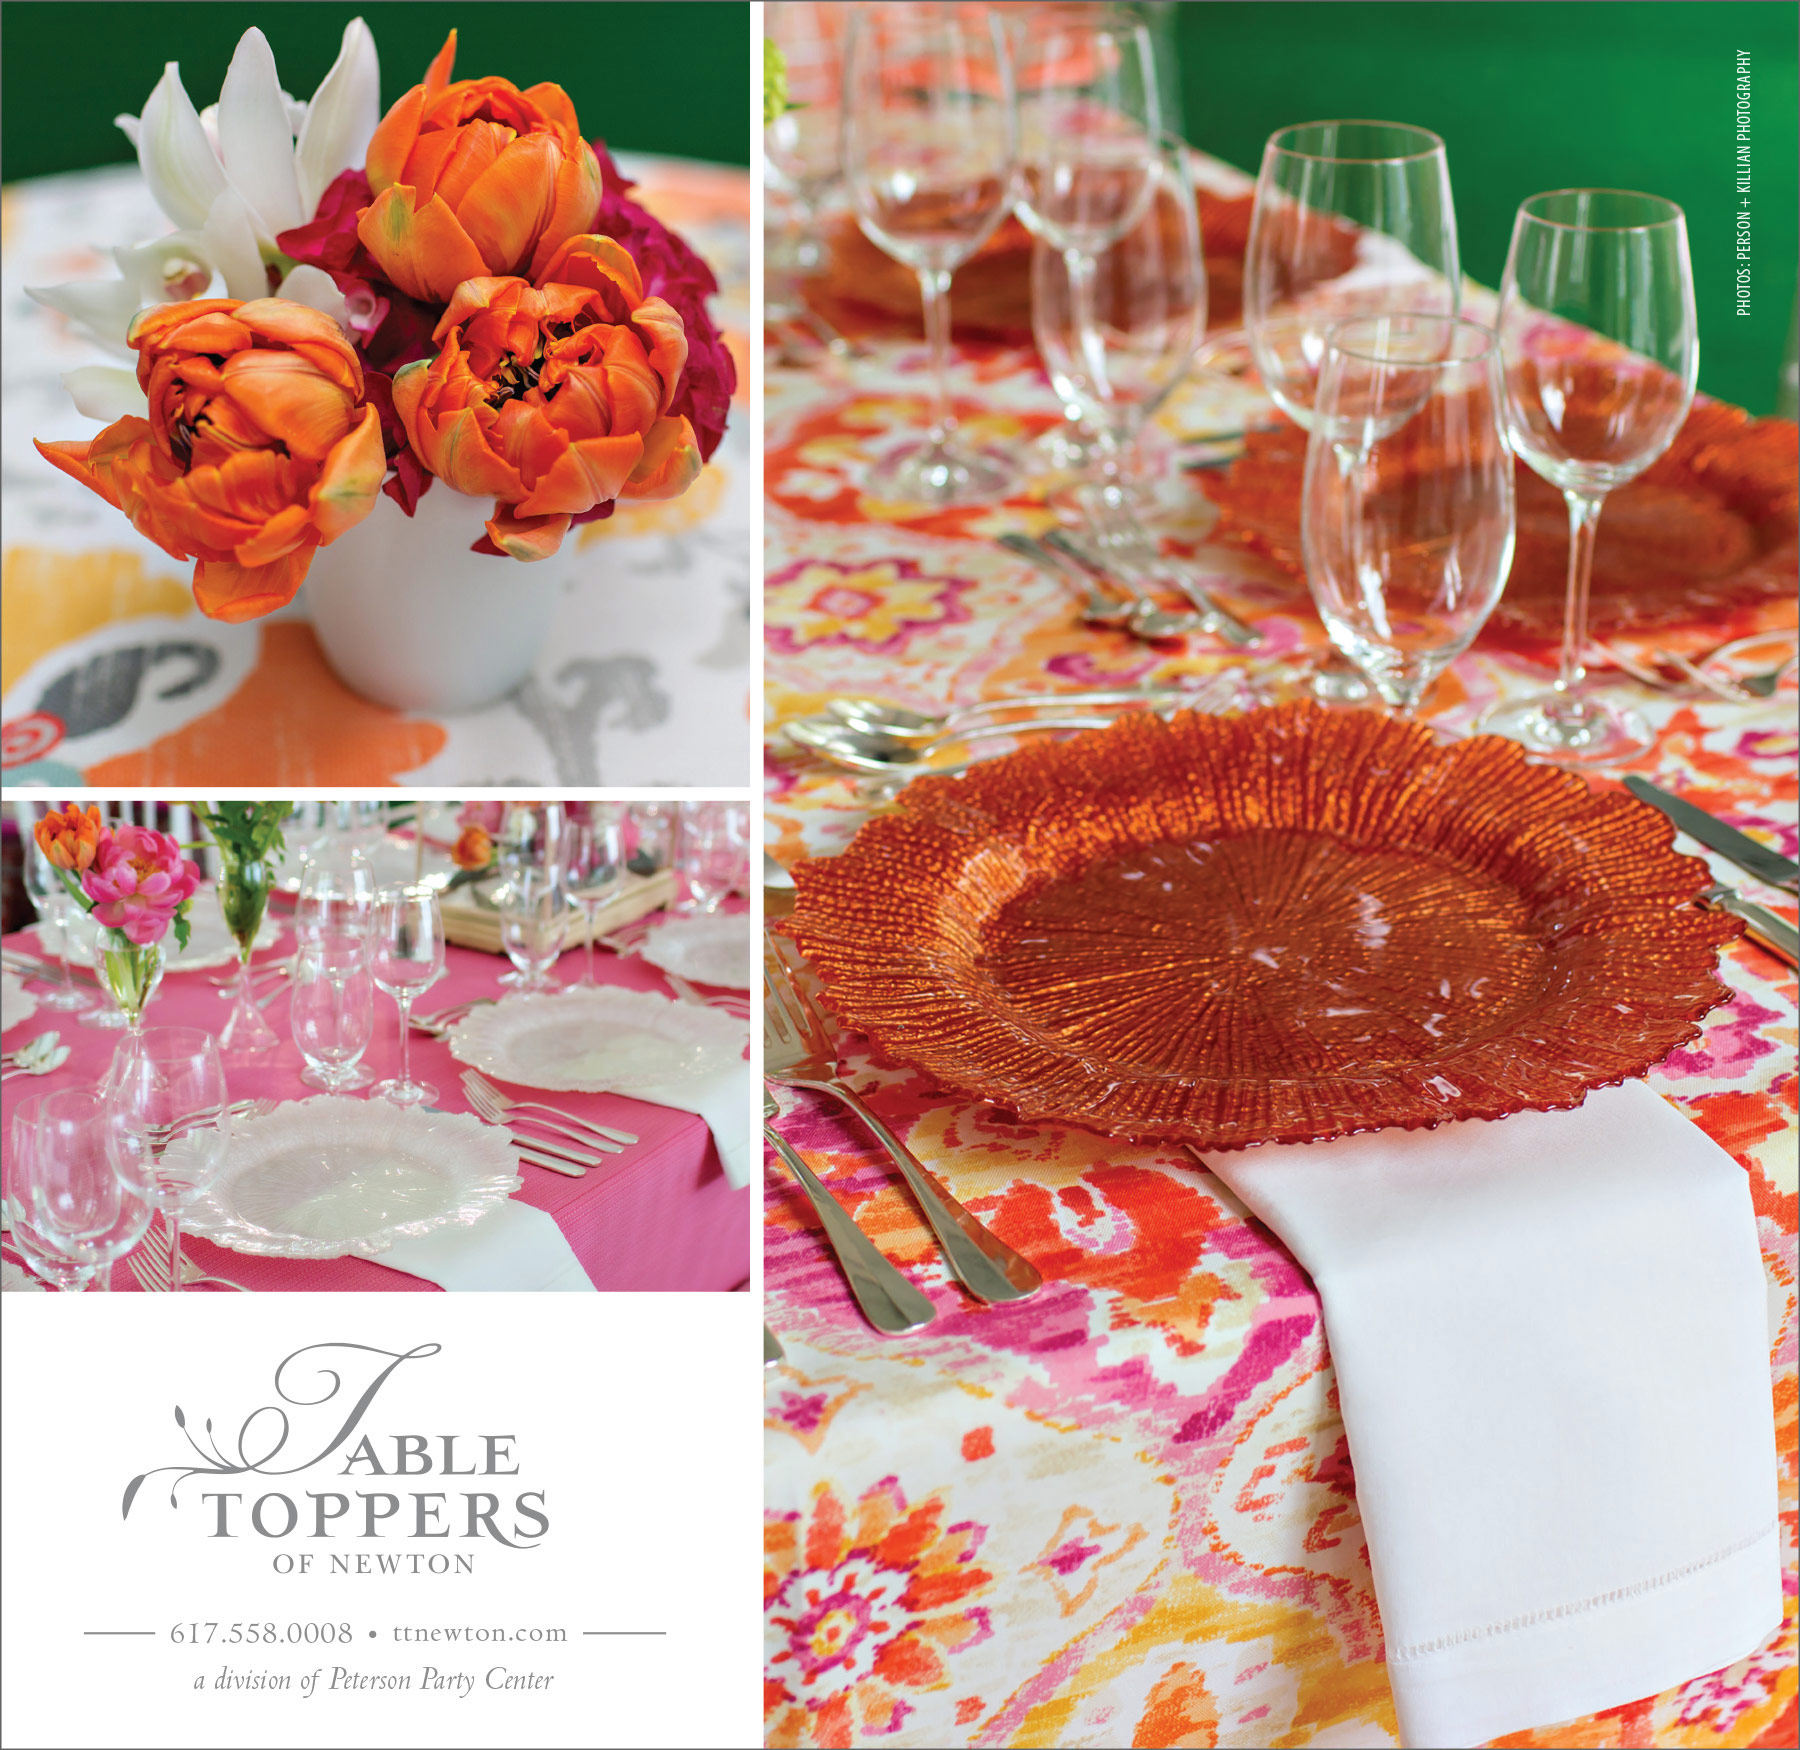 Table Toppers - Well Wed Ad